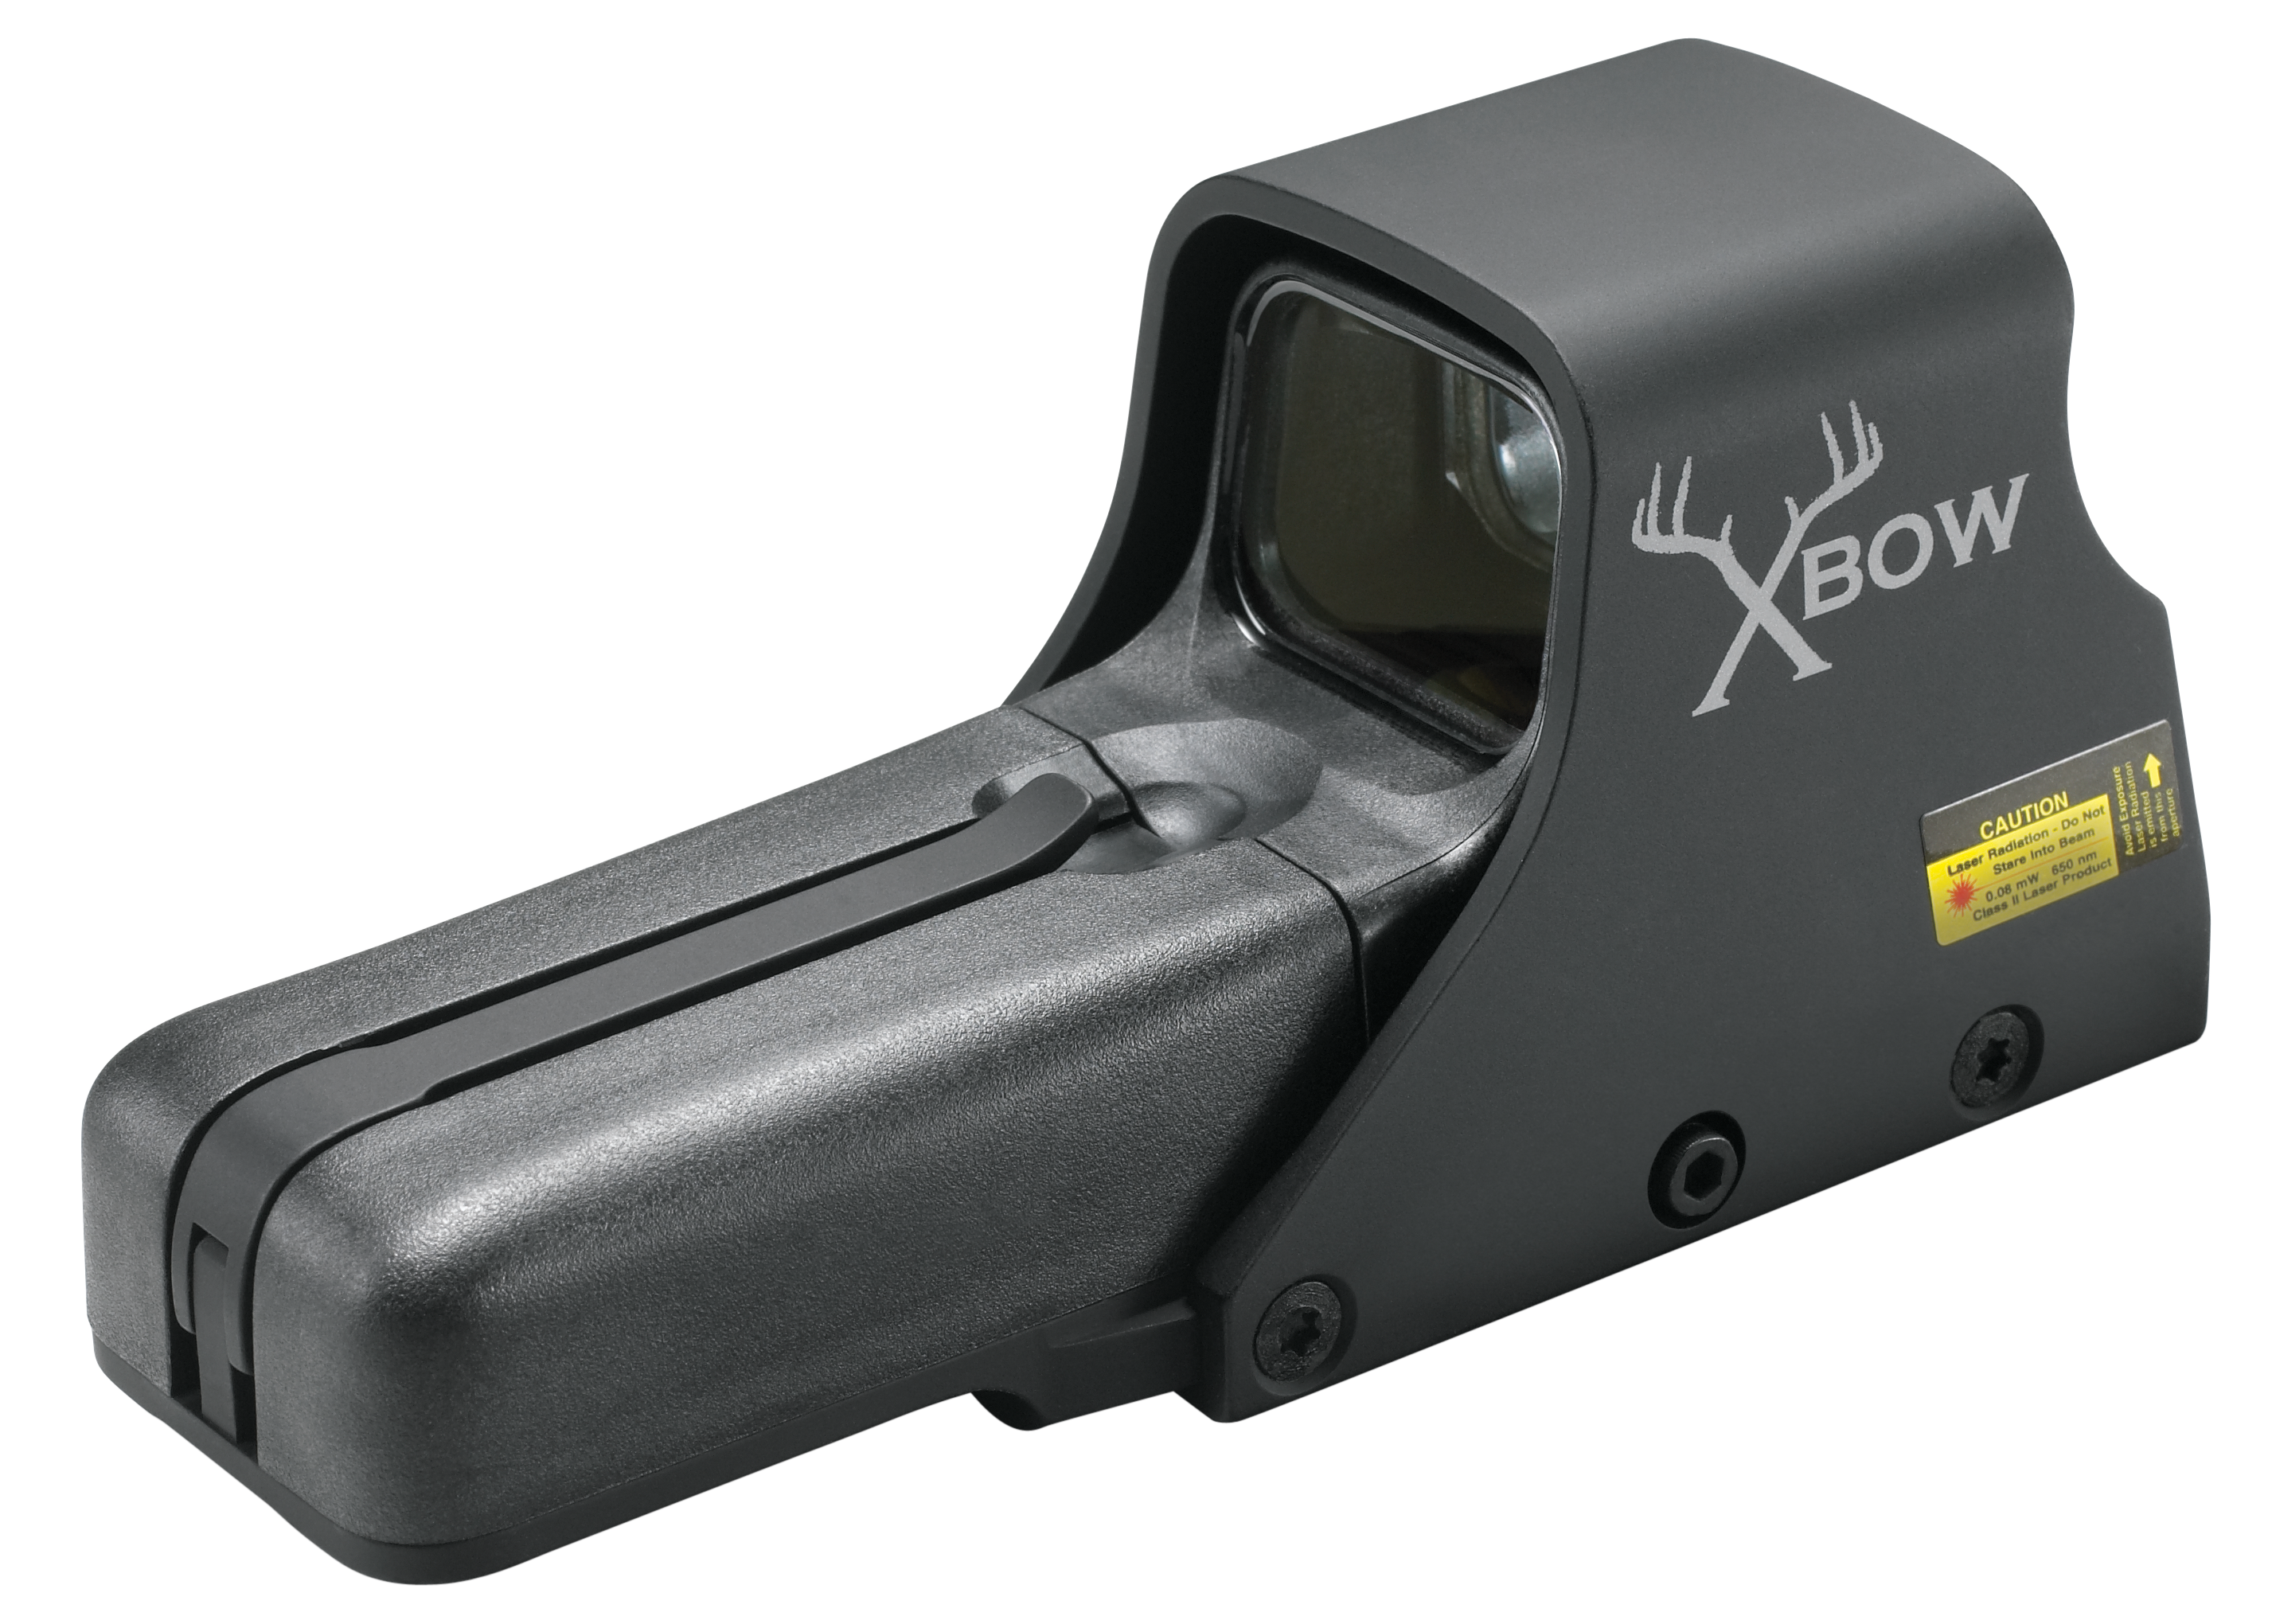 Eotech 512XBOW 512 1x 30x23mm Obj Unlimited Eye Relief 1 MOA Black